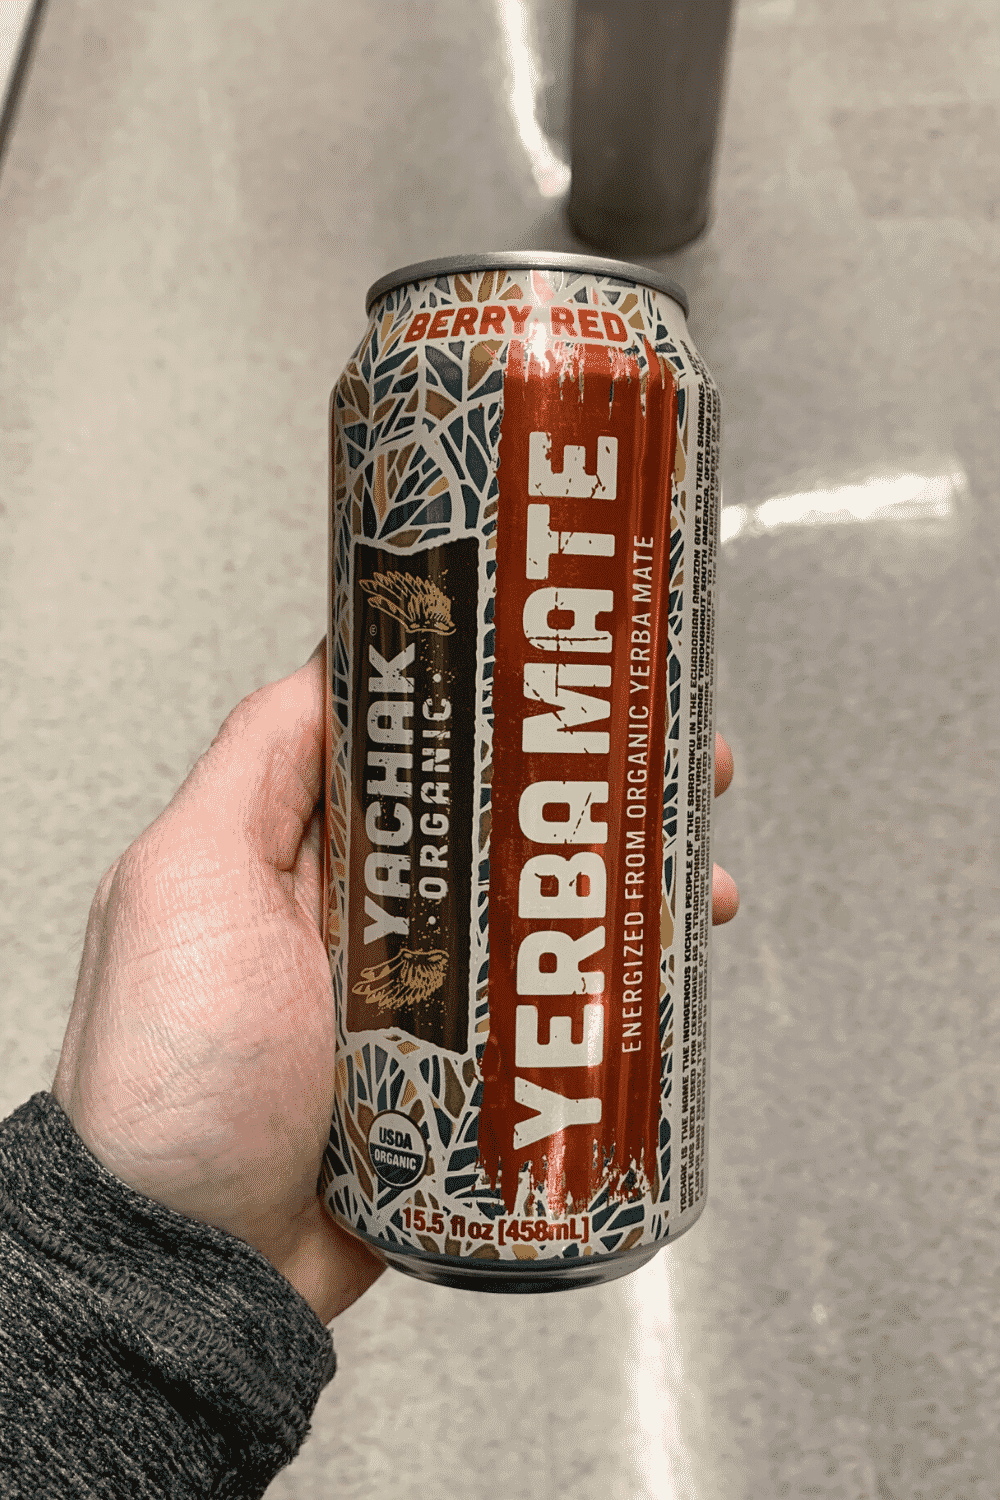 A hand holding a can of yachak organic year mate.